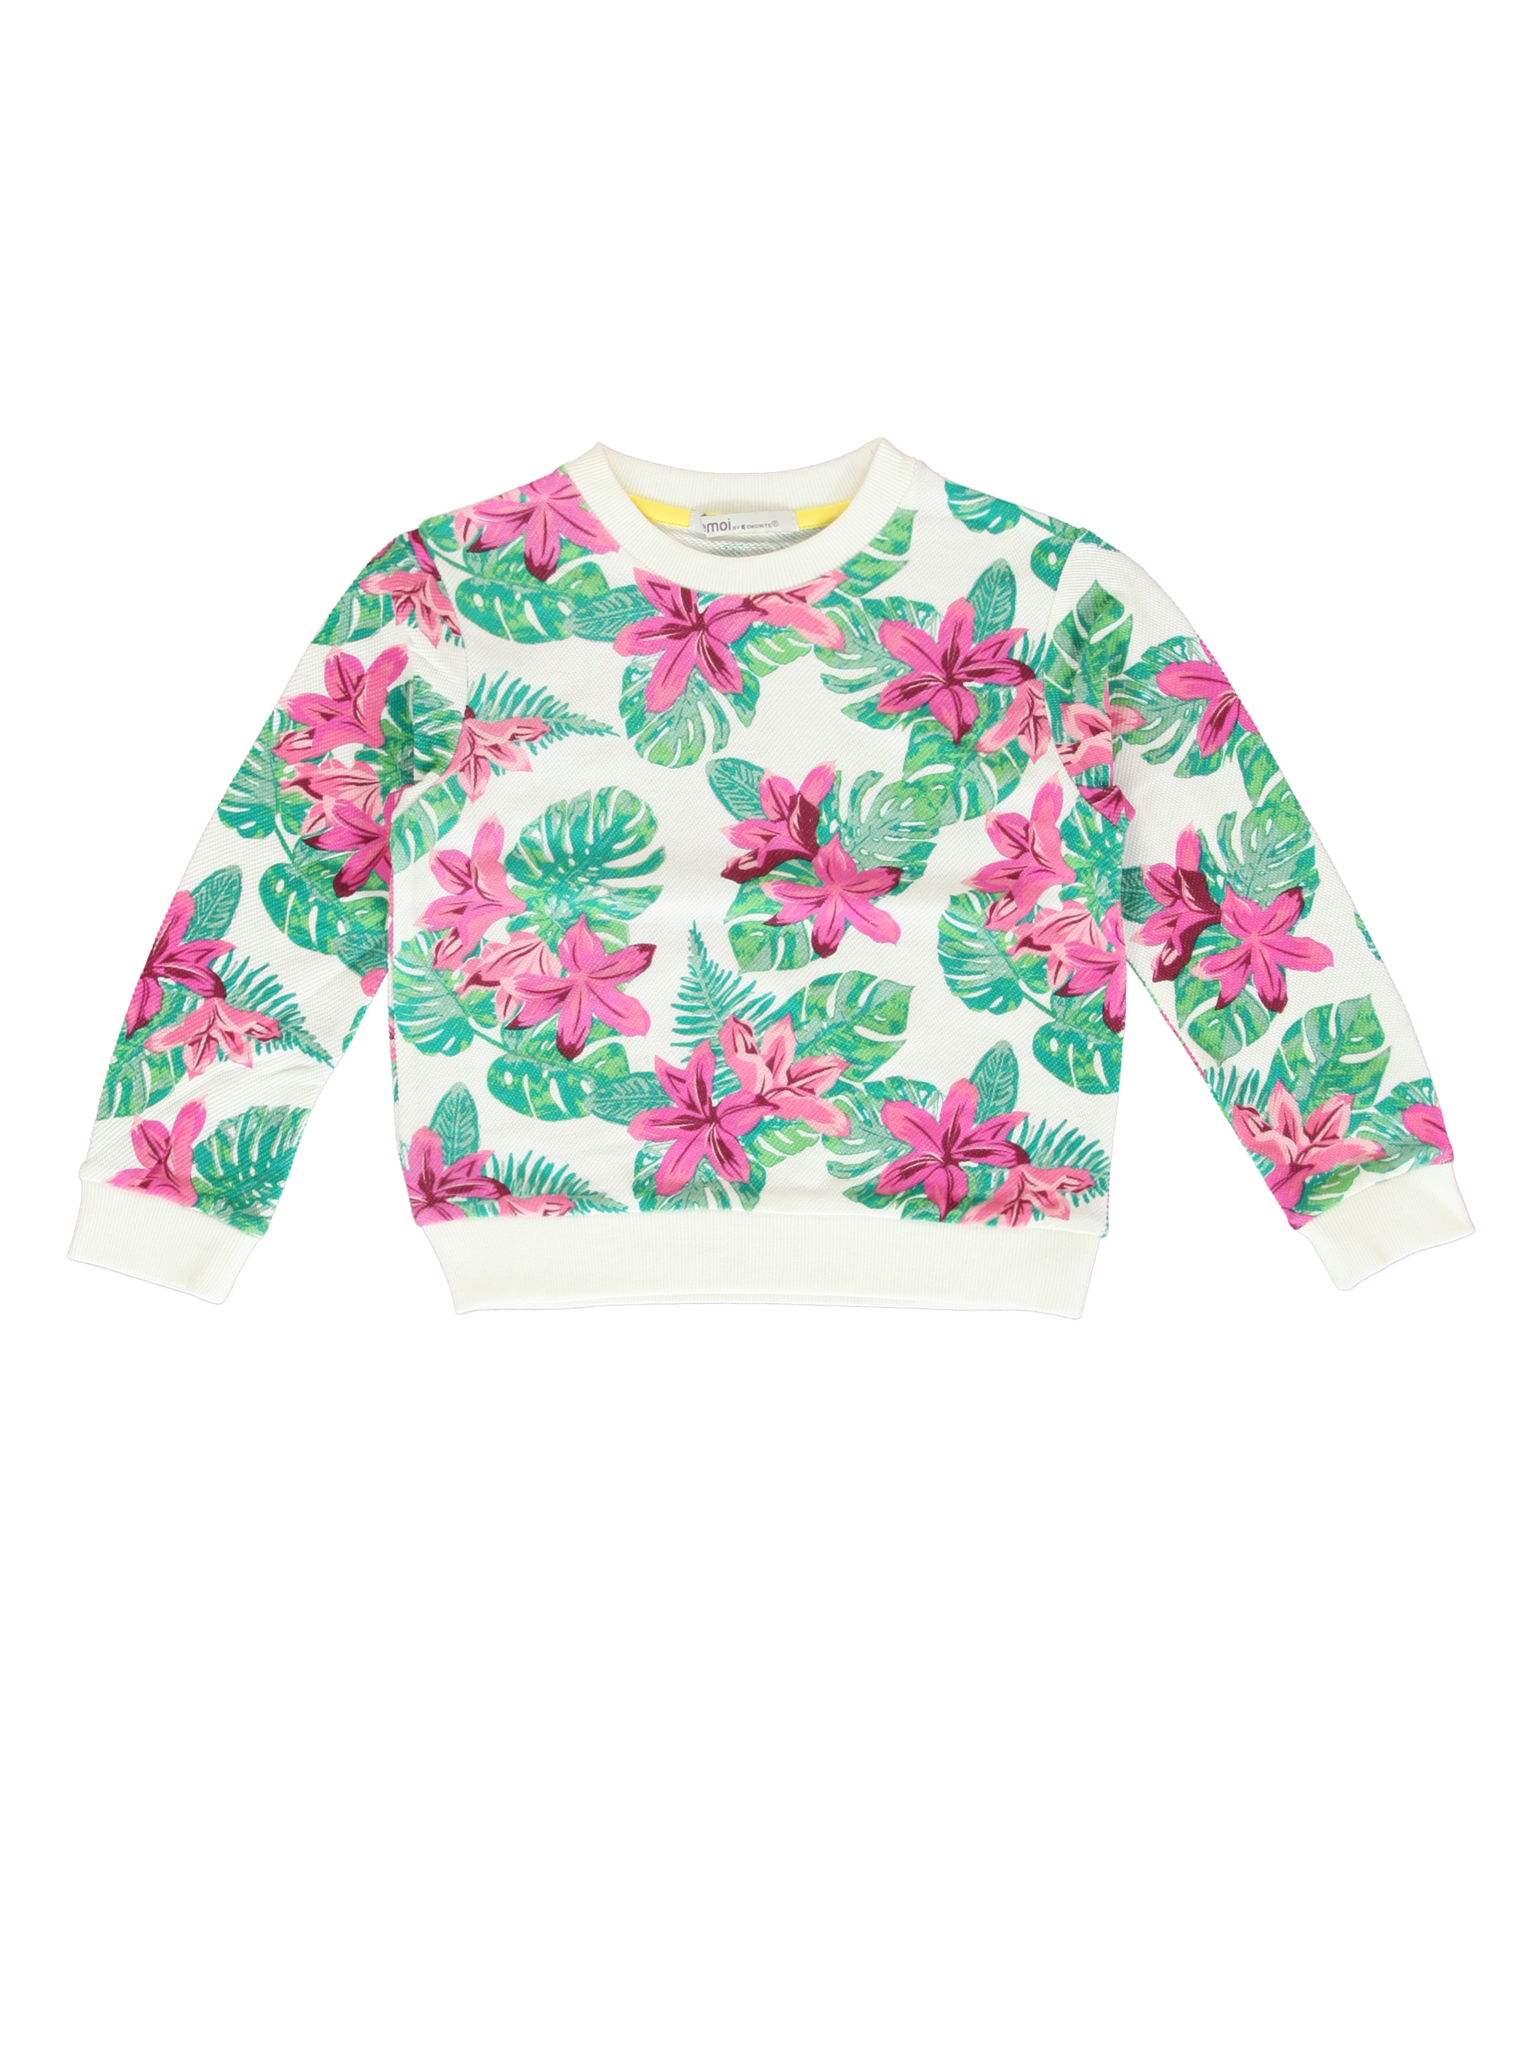 All Brands | Summerproducts Small Girls | Sweatshirt | 24 pcs/box